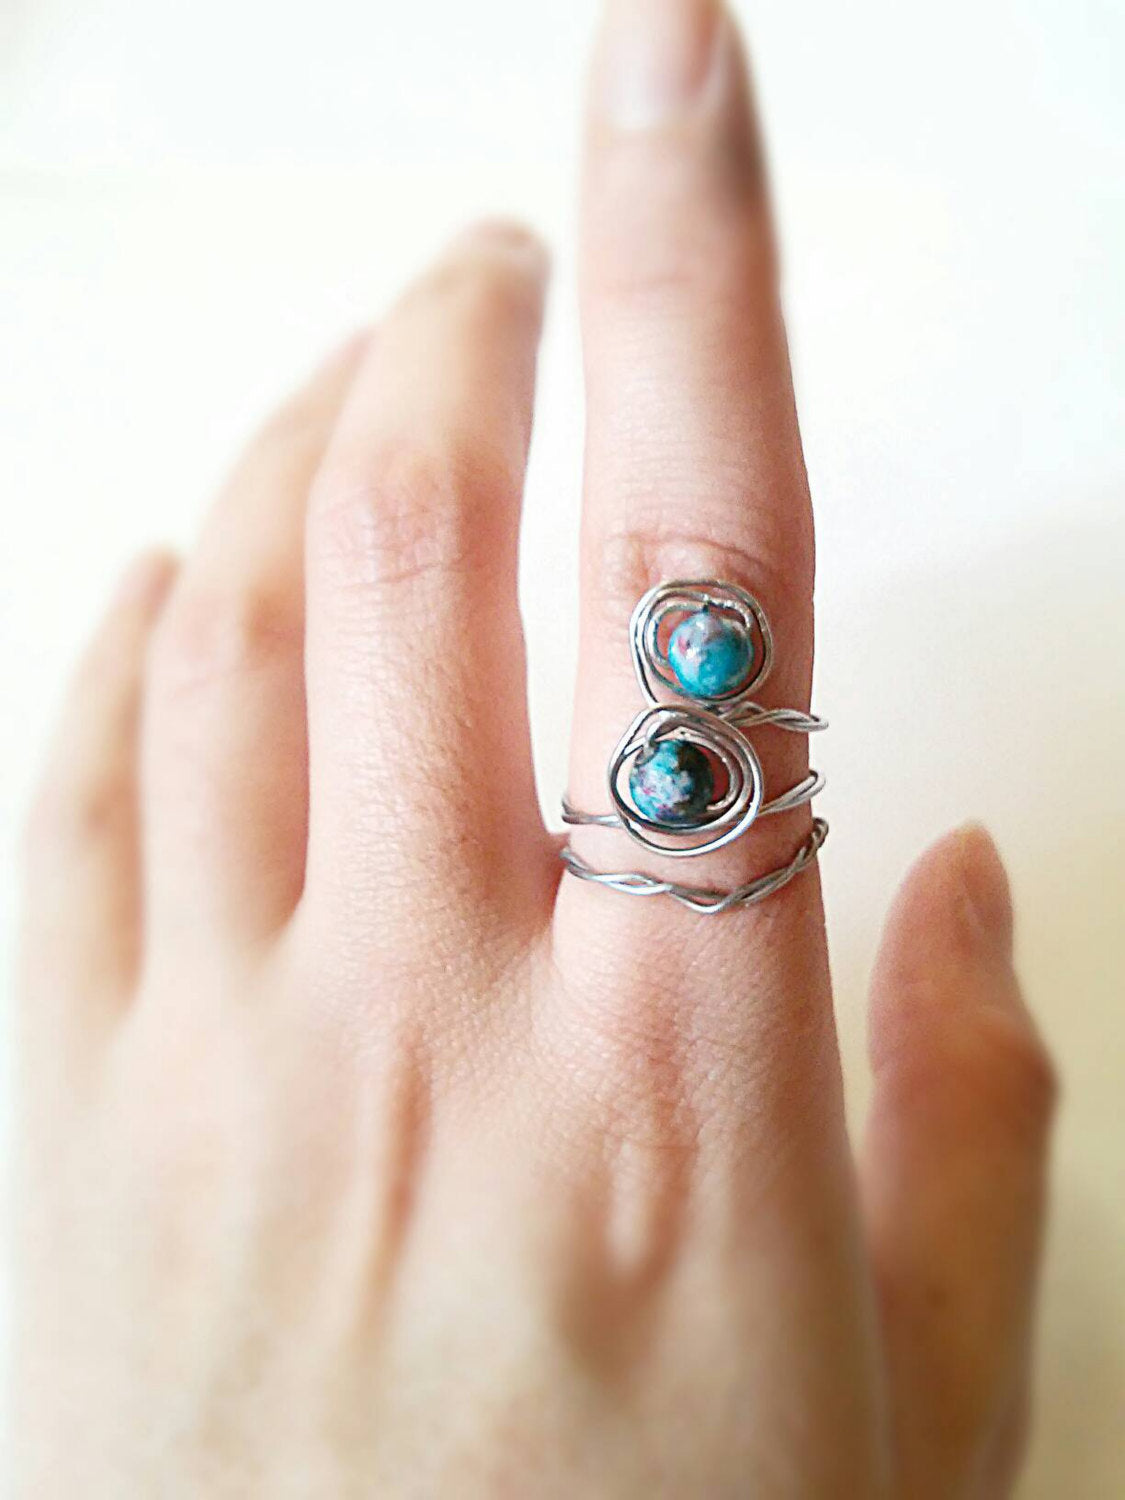 2 Boho stone stackable ring set/double stone ring/hippie ring/silver boho ring set/hippie stone ring/adjustable ring/boho ring gift for her